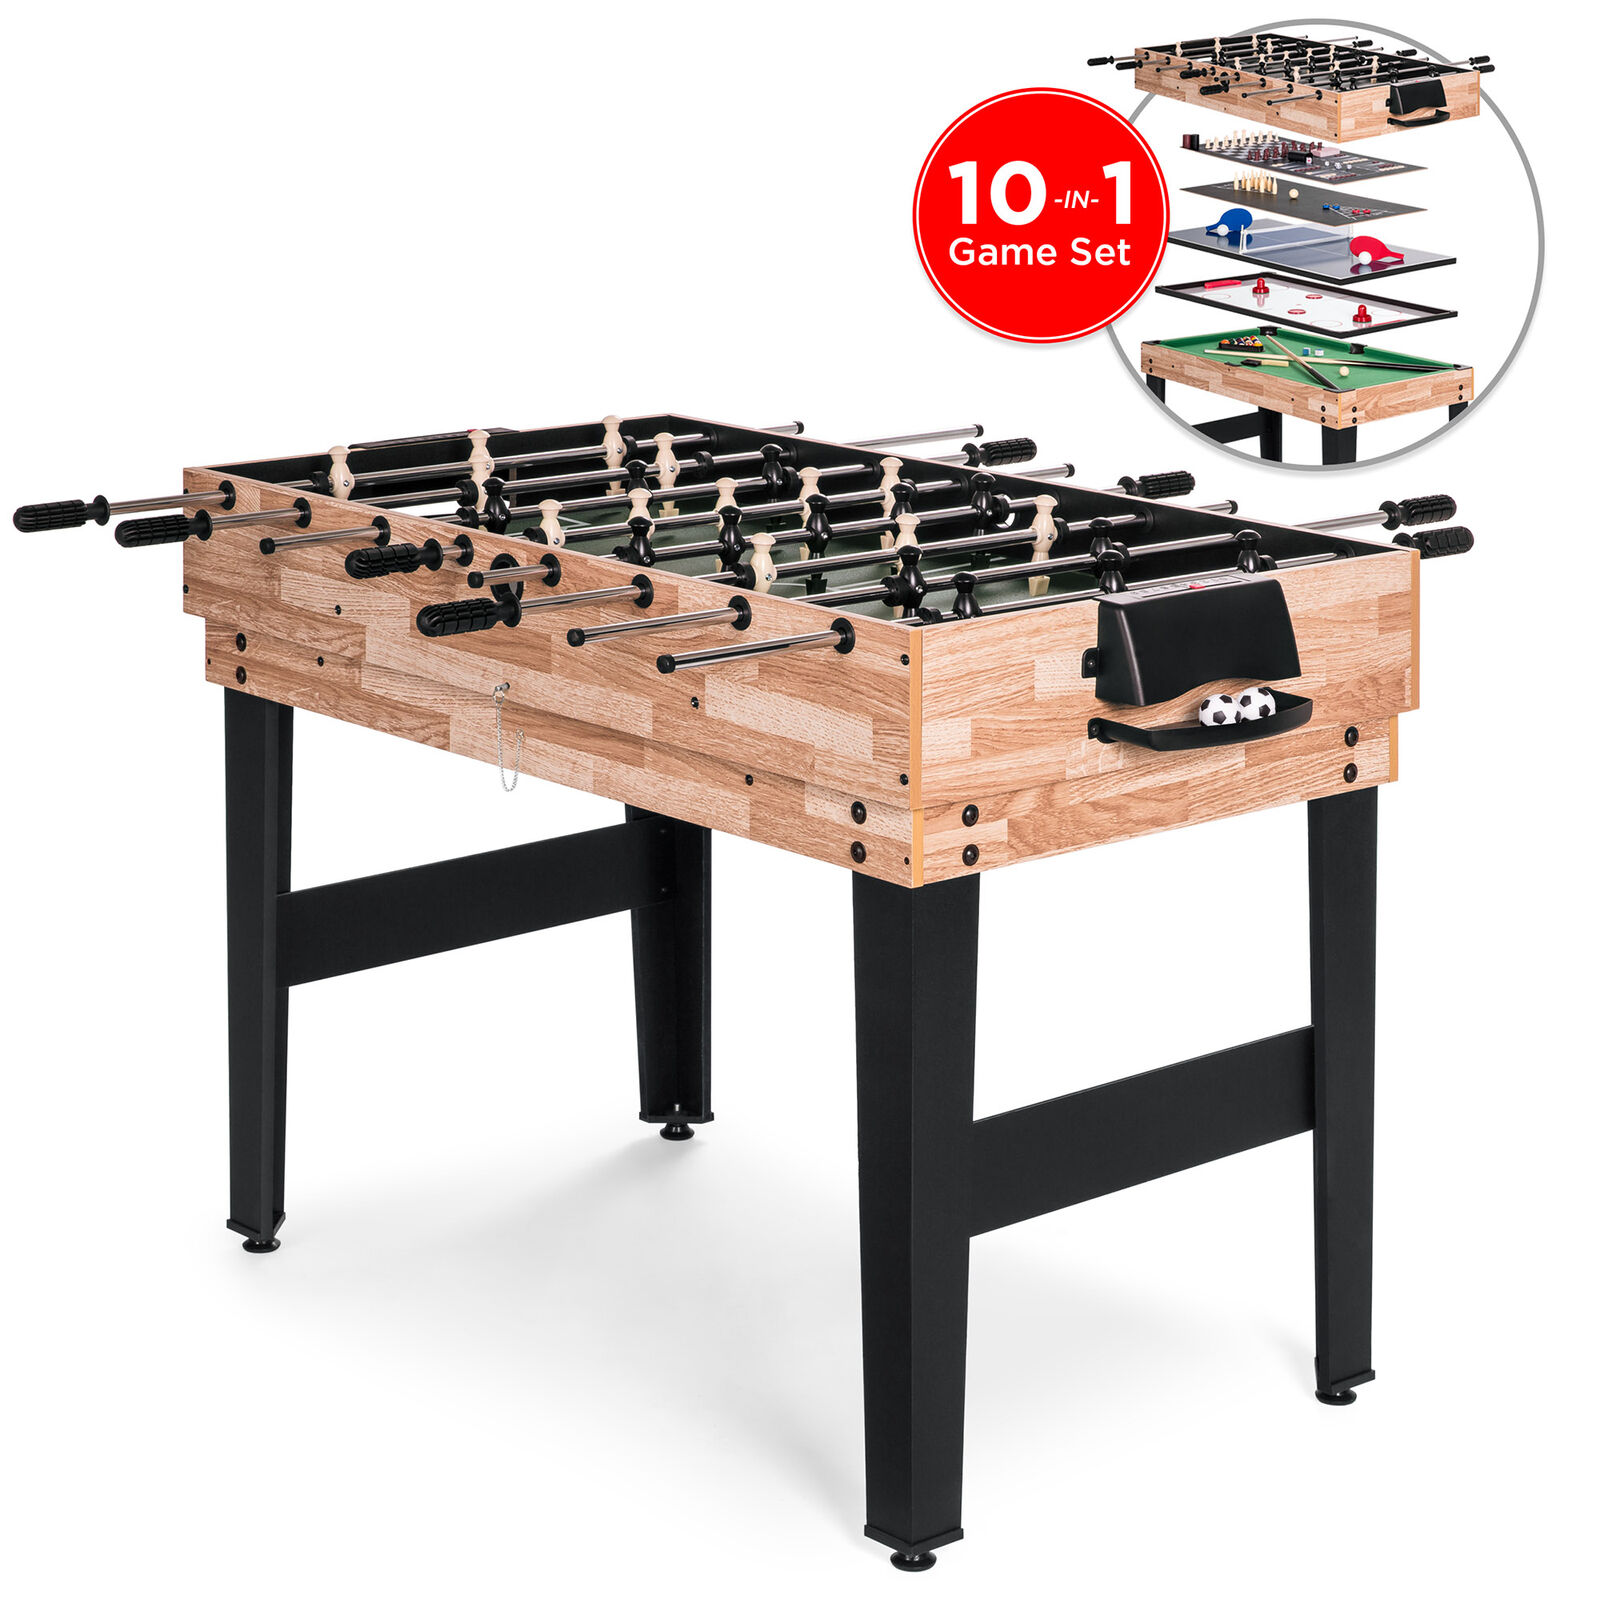 BCP 2x4ft 10-in-1 Combo Game Table Set w  Billiards, Foosball, Ping Pong, & More